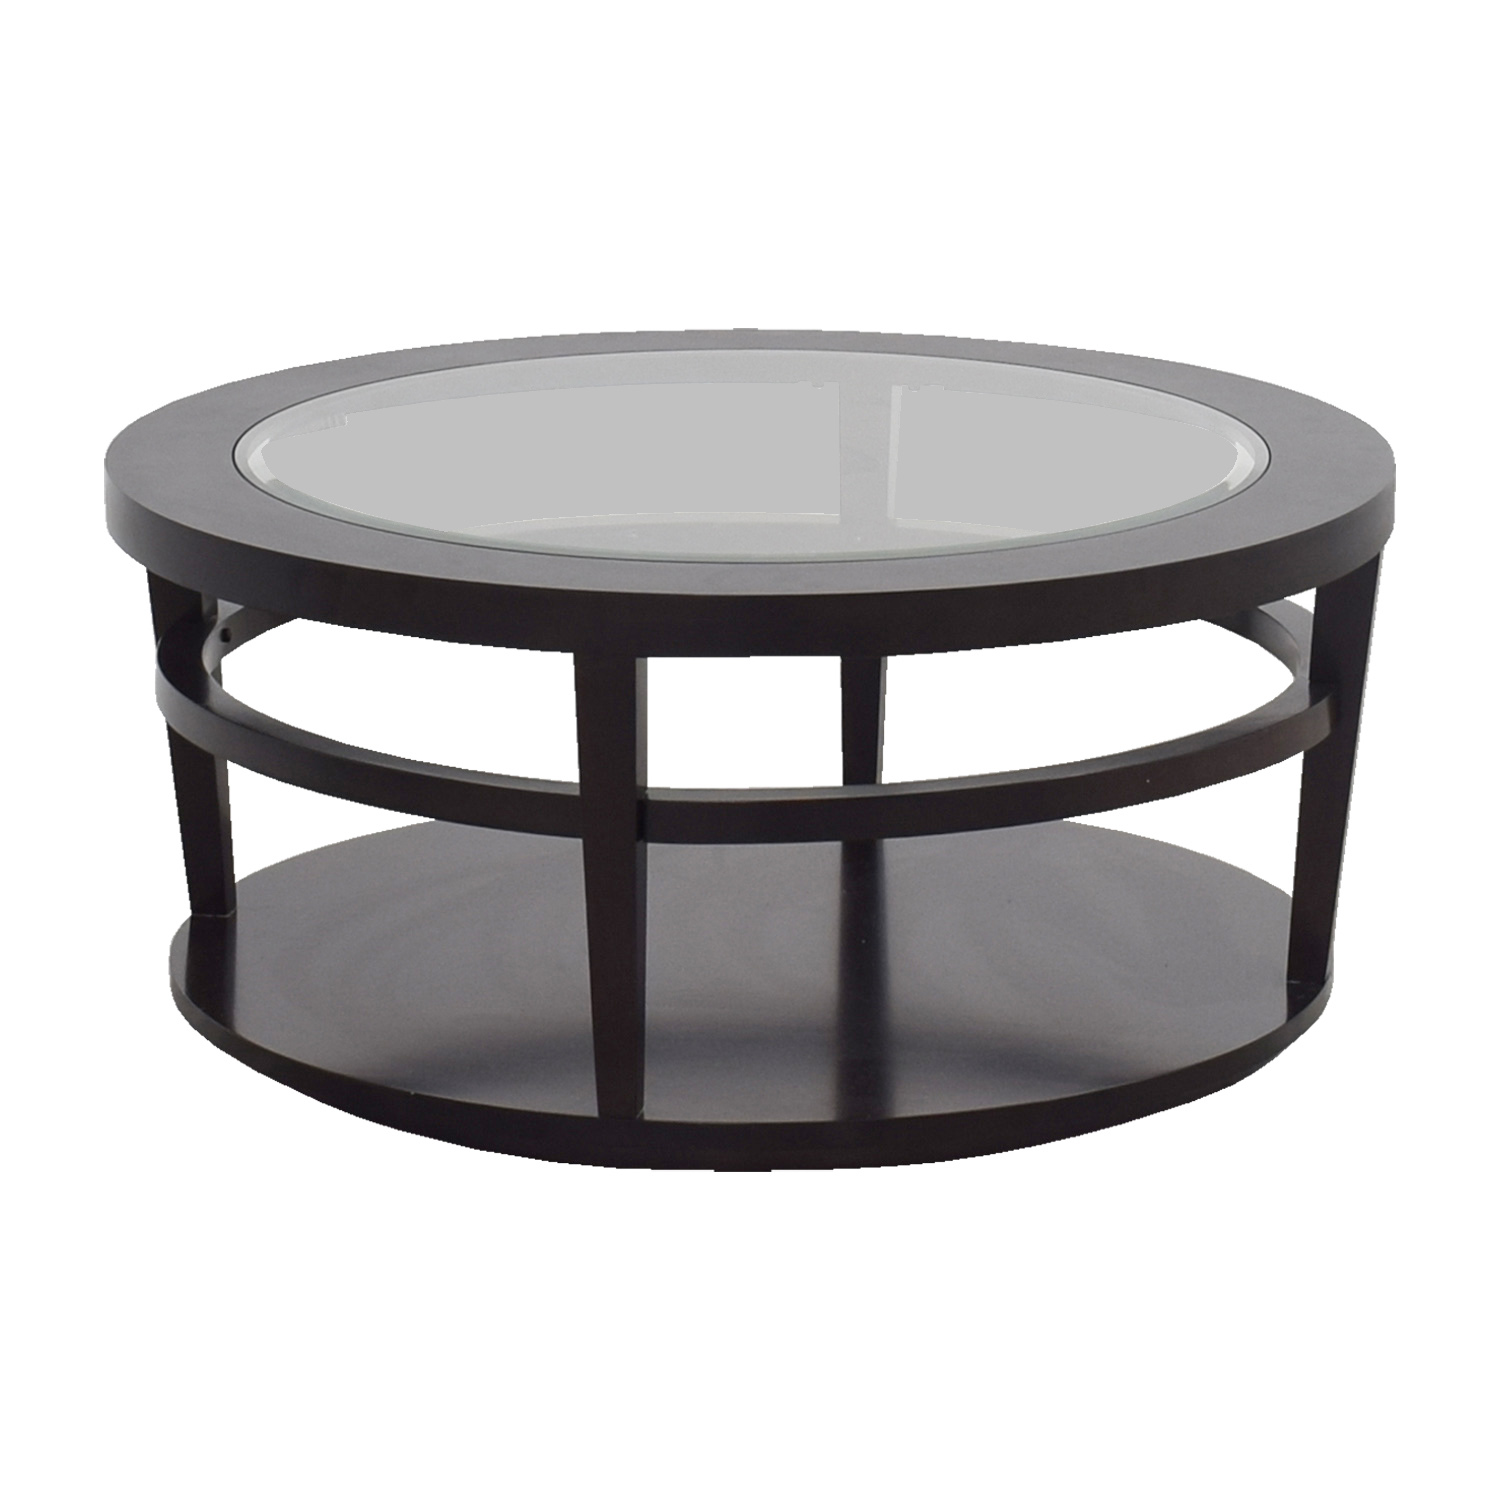 OFF Macy s Macy s Avalon Round Glass and Wood Coffee Table